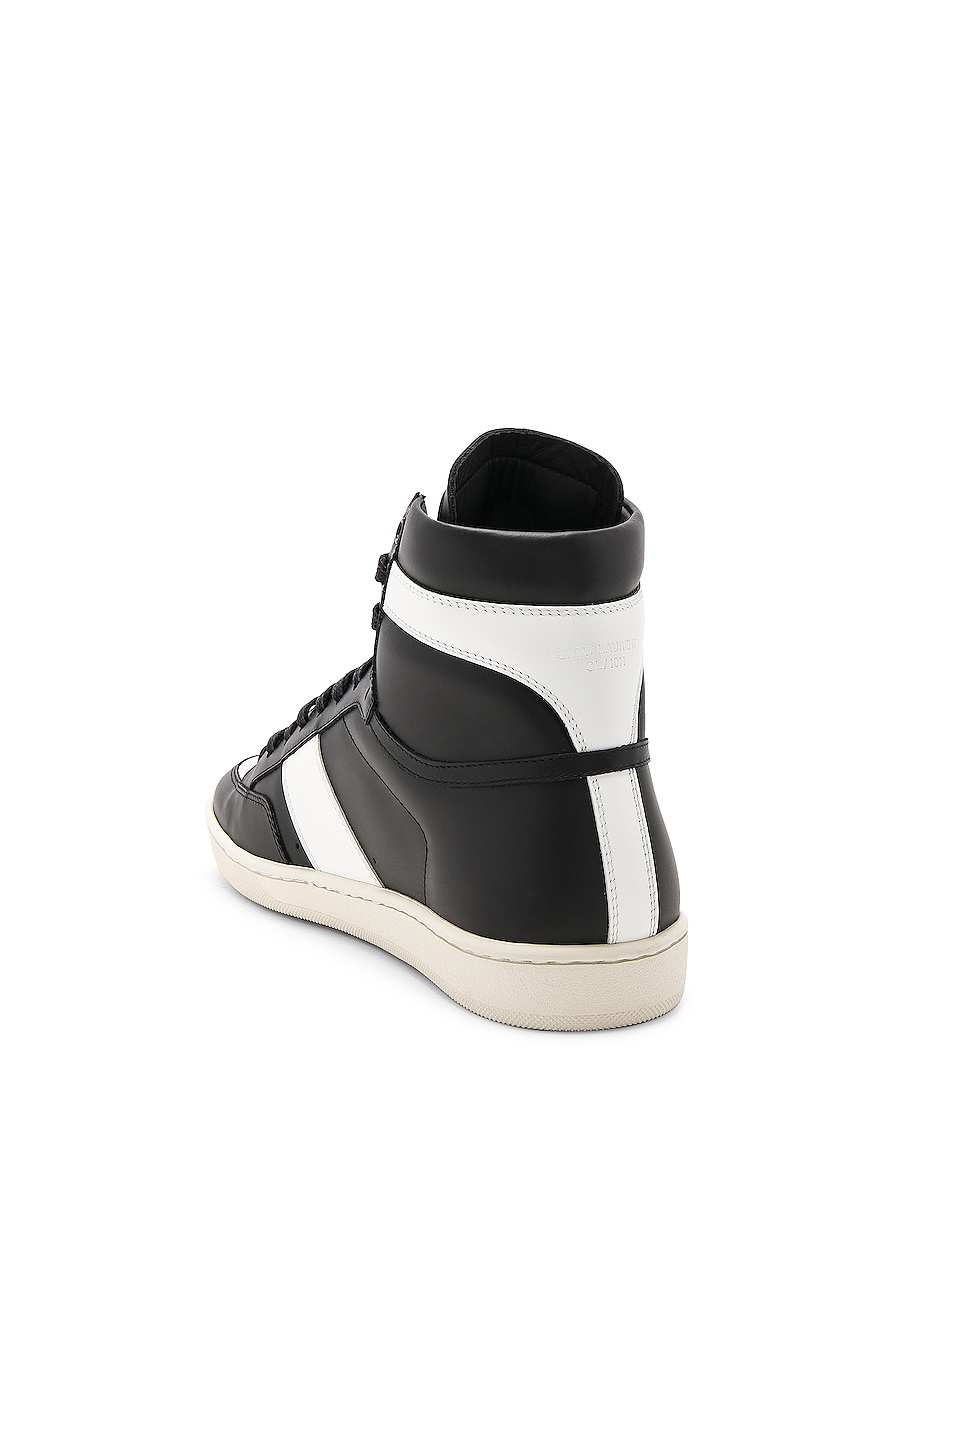 Image 3 of Saint Laurent Signature Court Classic SL/10H Leather High Top Sneakers in Black & White